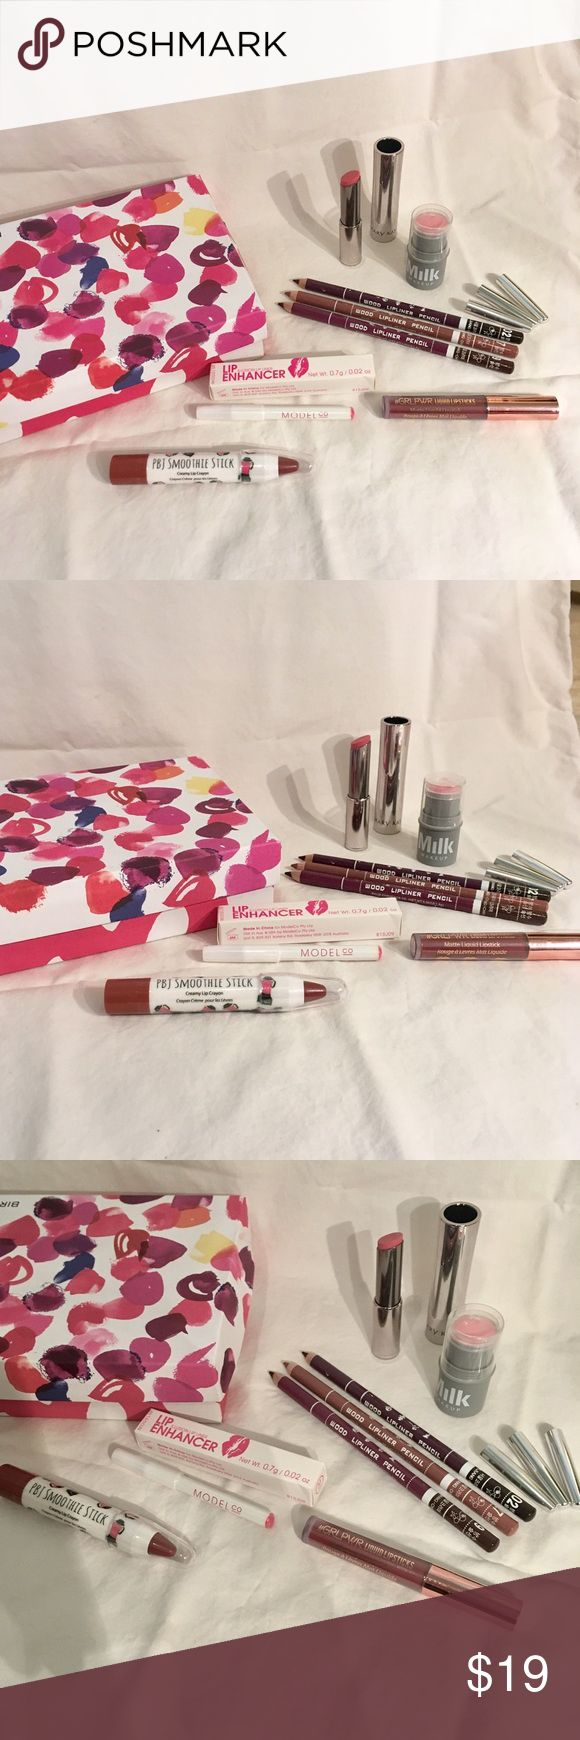 Lip service bundle set! New brands! New.  XOXO with box. All new, never used. This bundle is everything for lips and stacked in the pyramid a red. 8 items! Milk Makeup Lip+Cheek 0.1oz  Mary Kay twist lipstick full size color me coral 3 Davis Cosmetics wood lipliner pencils in blossom, plum and maroon.Full size. Matte Liquid lipstick #GRLPWR by beauty crop liquid lipsticks.Cruelty free.Color: Imma Bawse Lip Enhancer Illusion Lipliner by the Model Co. Color:Babydoll pink 0.02oz PBJ Smoothie…